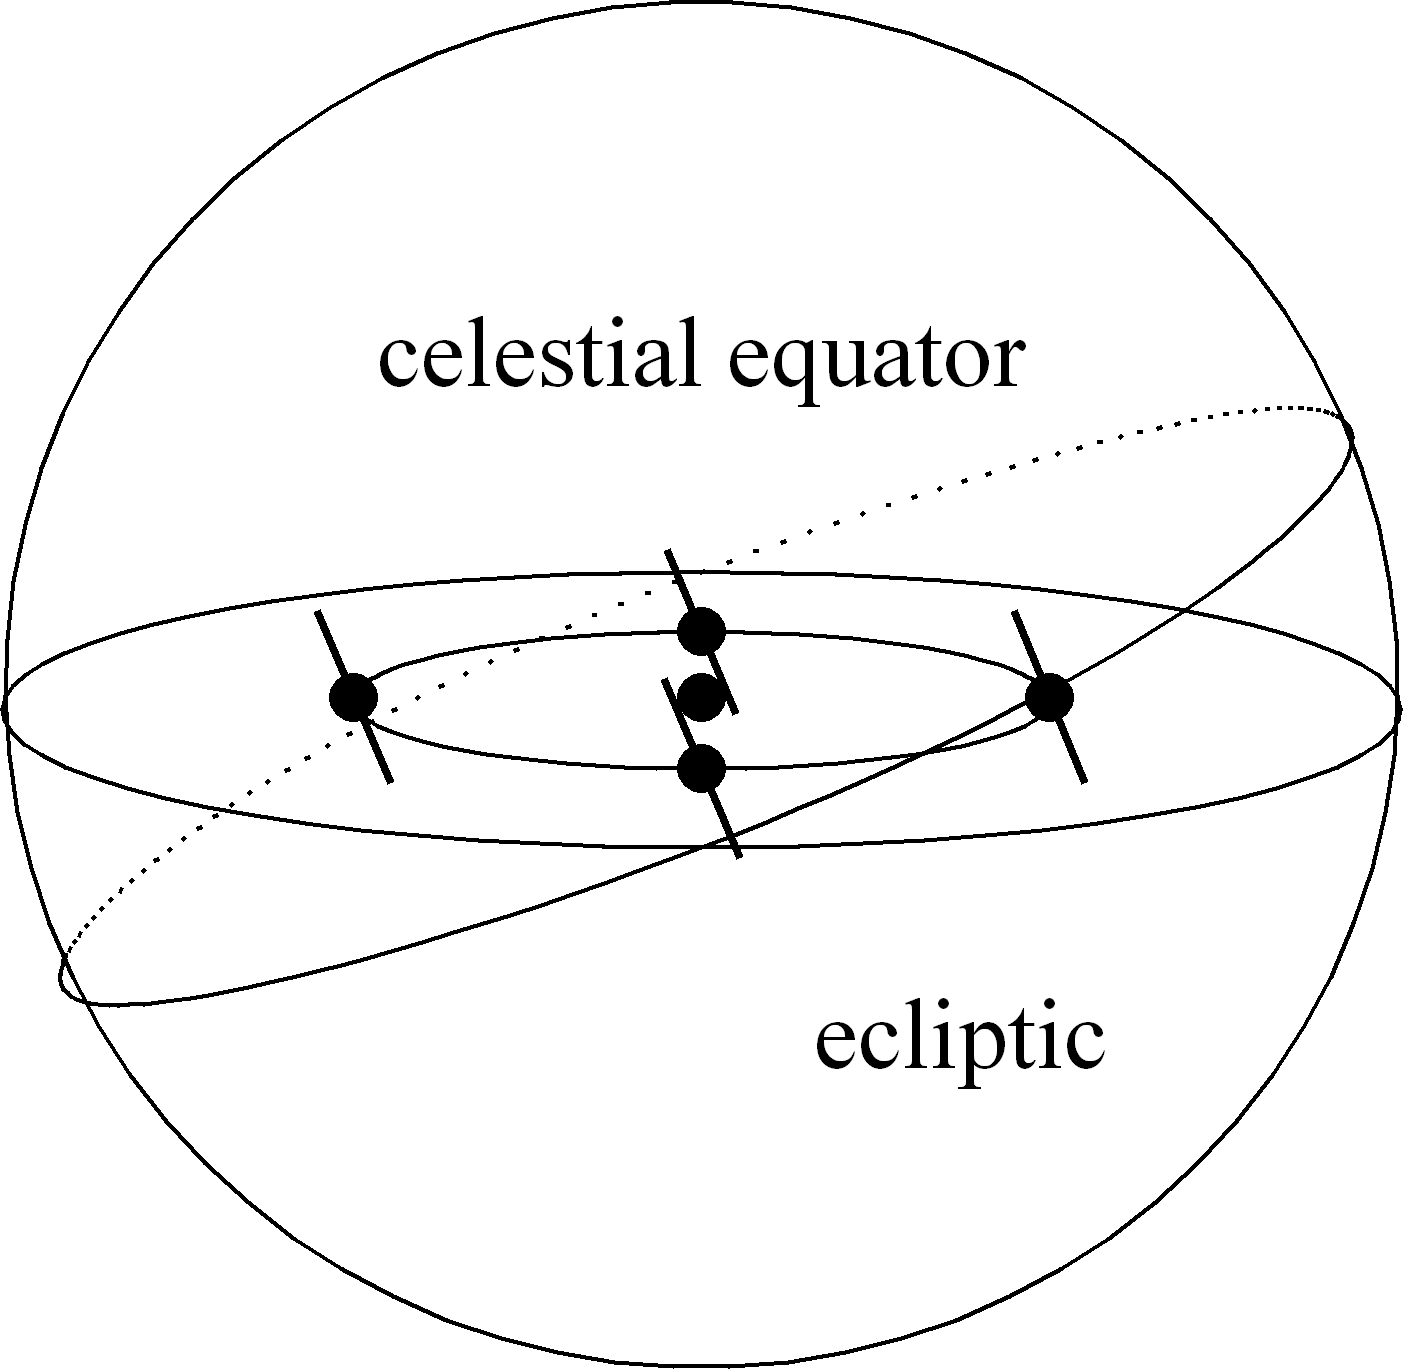 Figure 5: The celestial sphere 3 Basic calendrical concepts 3.1 The year If we consider a lunar year consisting of 12 mean lunar months, the length equals 354.